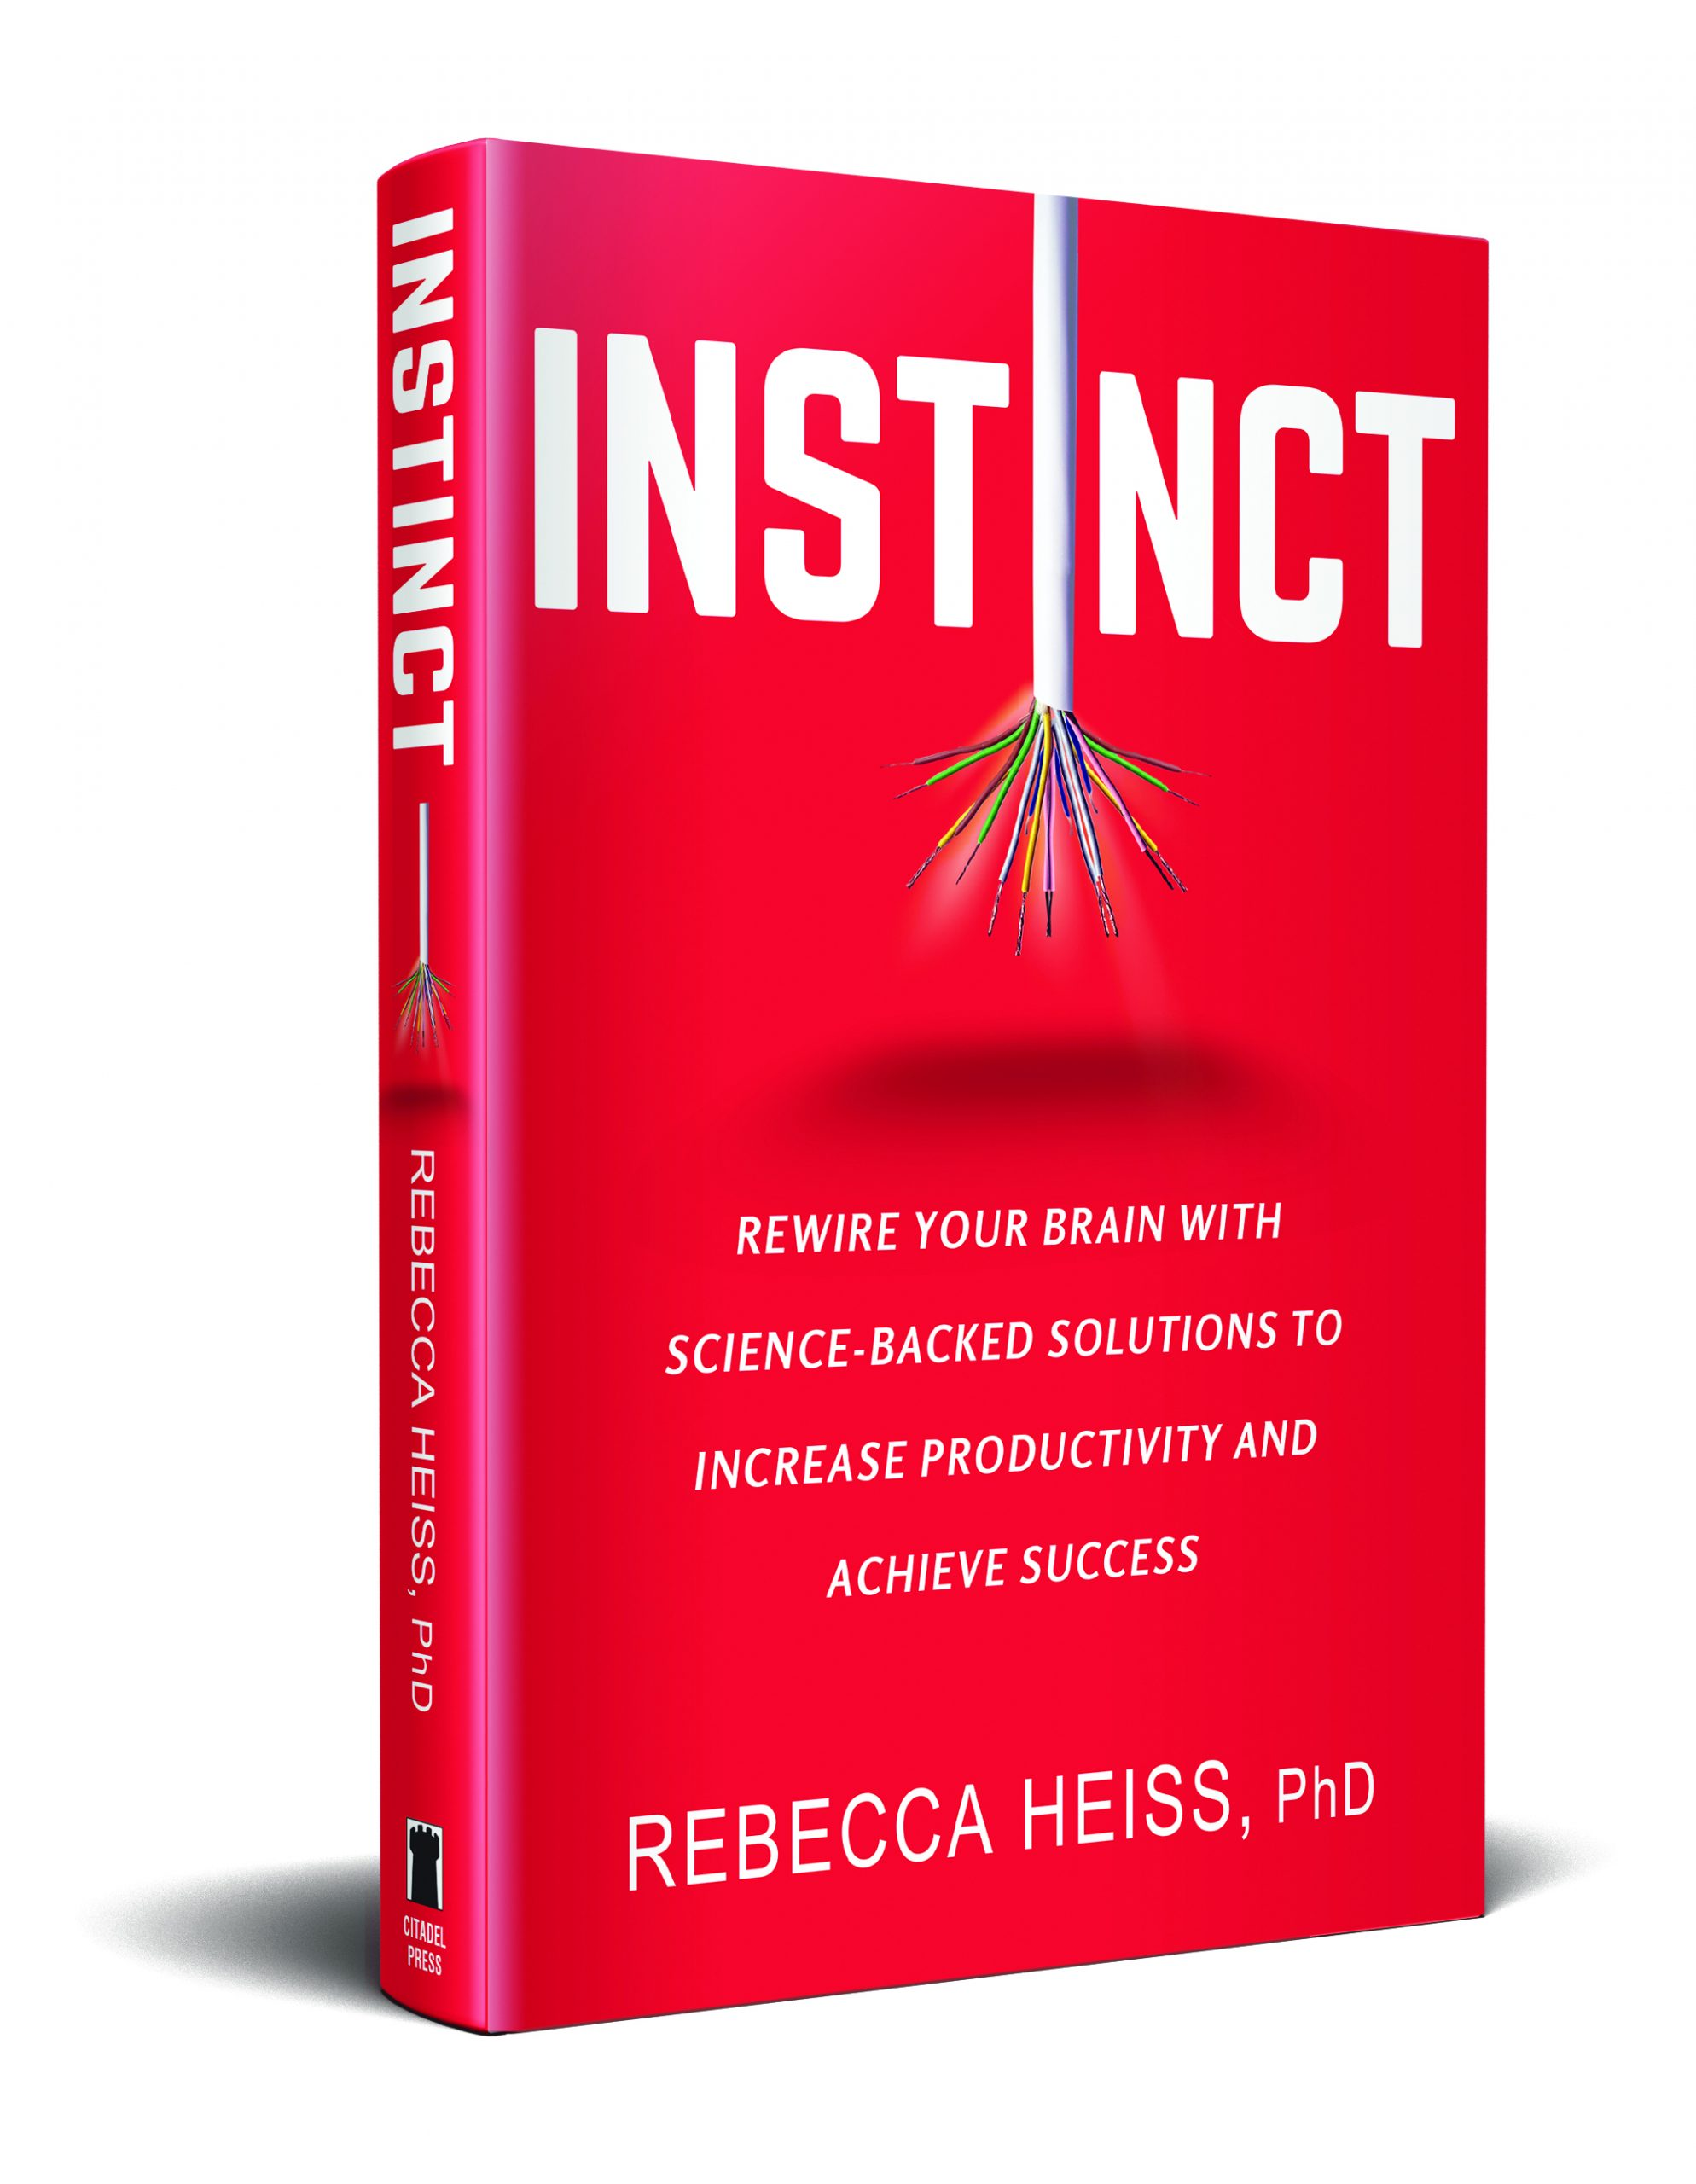 The cover of my new book, INSTINCT